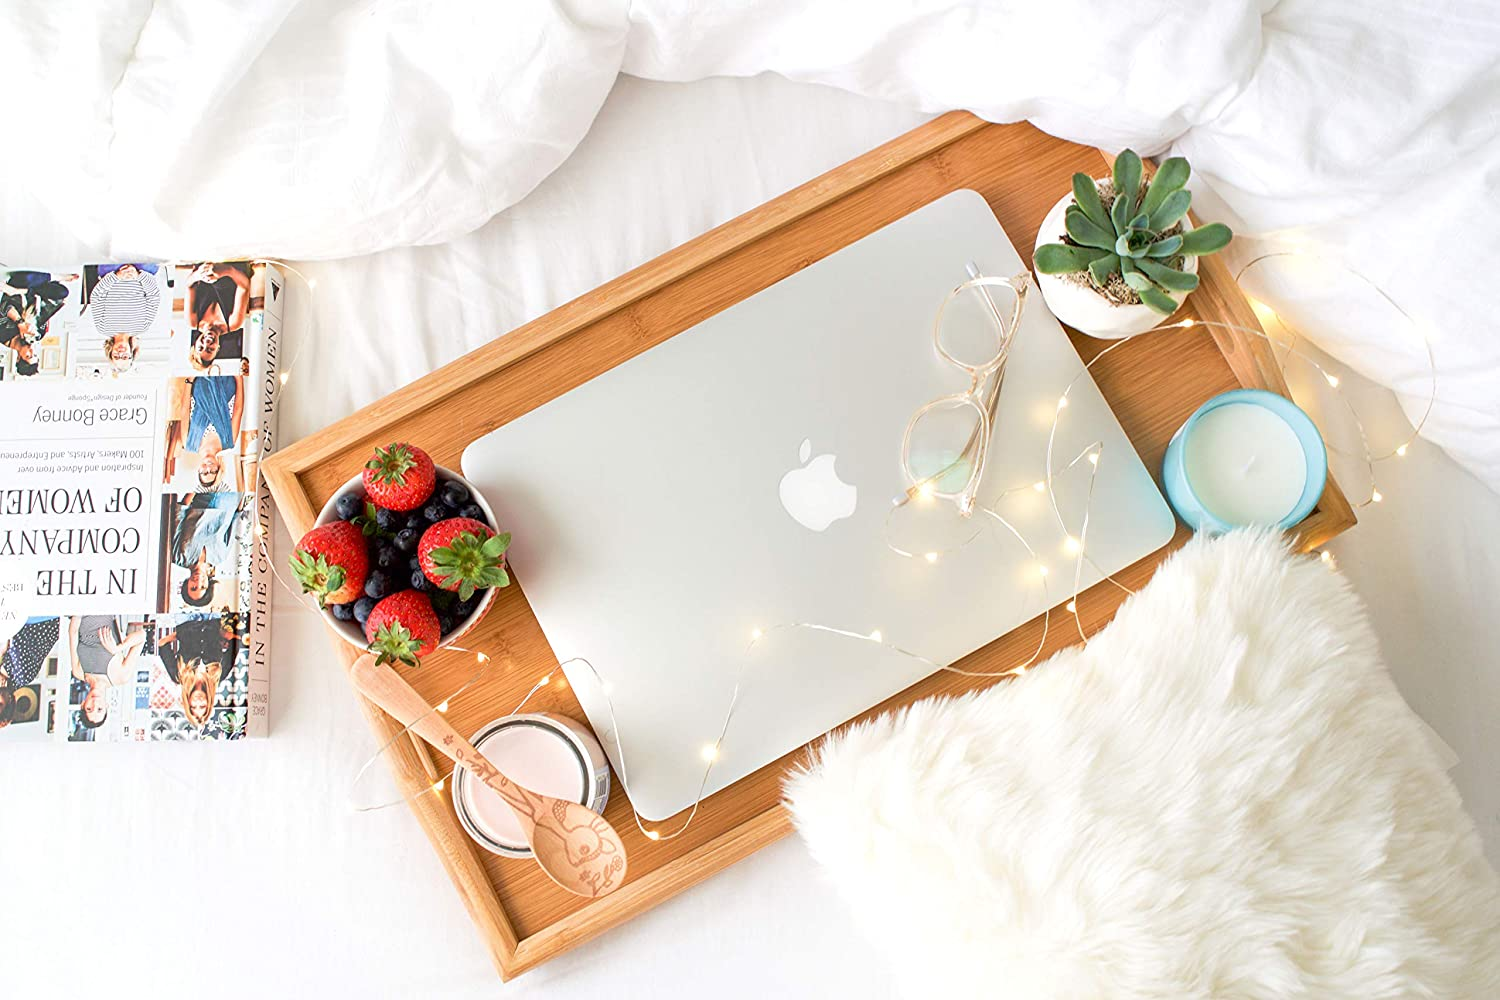 Lap Desk| 100/% Natural and Eco-Friendly Tray with Handles and Legs Bed Table Laptop Desk KOZY KITCHEN Foldable Breakfast Tray| Large Organic Bamboo Folding Serving Tray